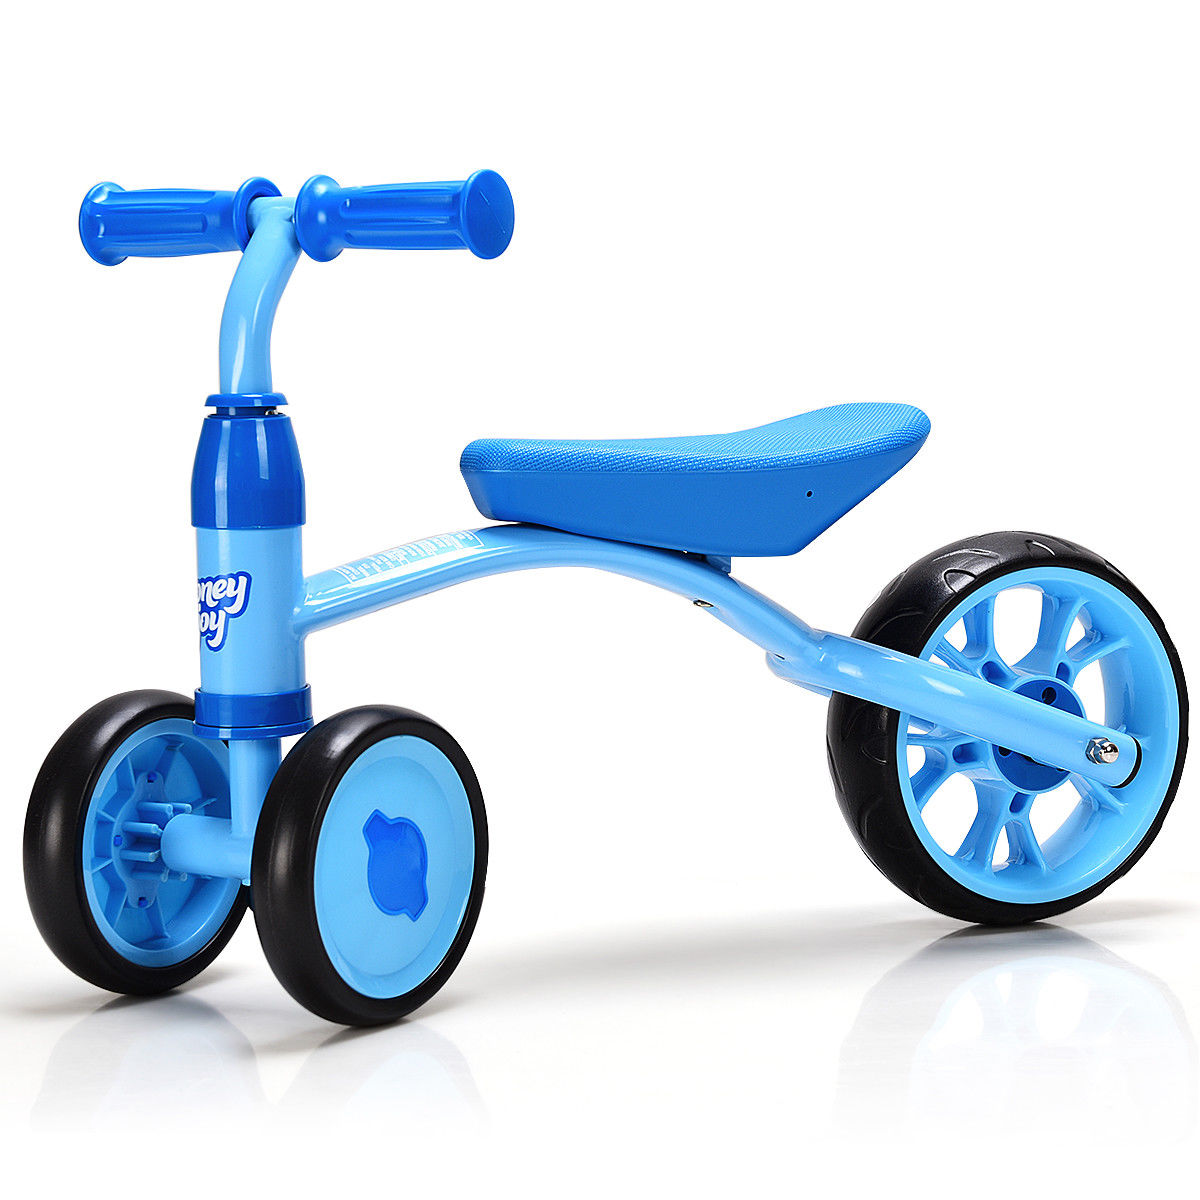 Costway 3 Wheels Kids Balance Bike Tricycle Toy Rides Baby Walker No Foot Pedal Blue